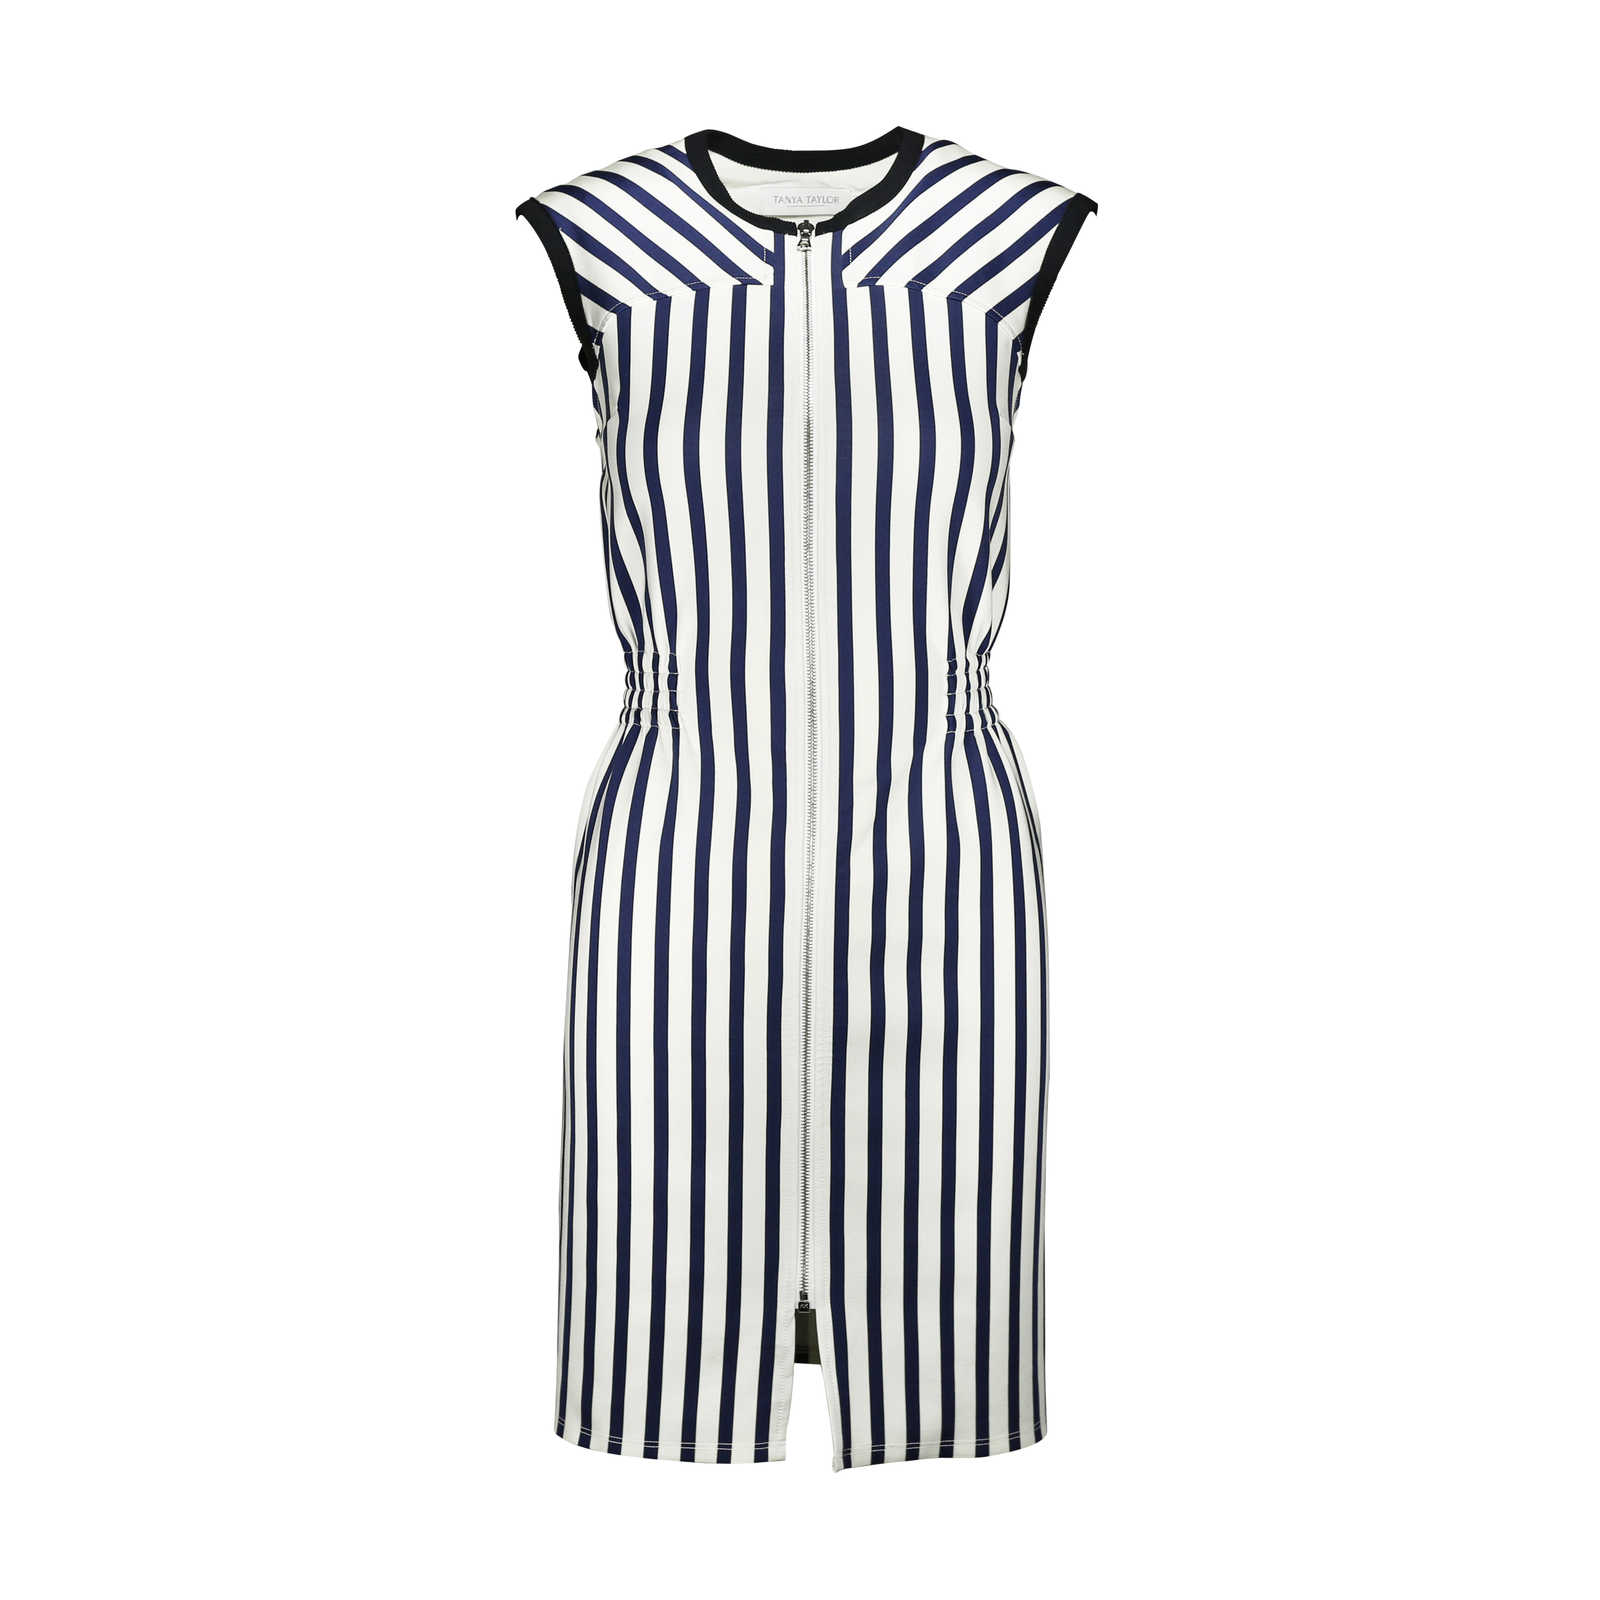 tanya-taylor-striped-dress-1.jpg